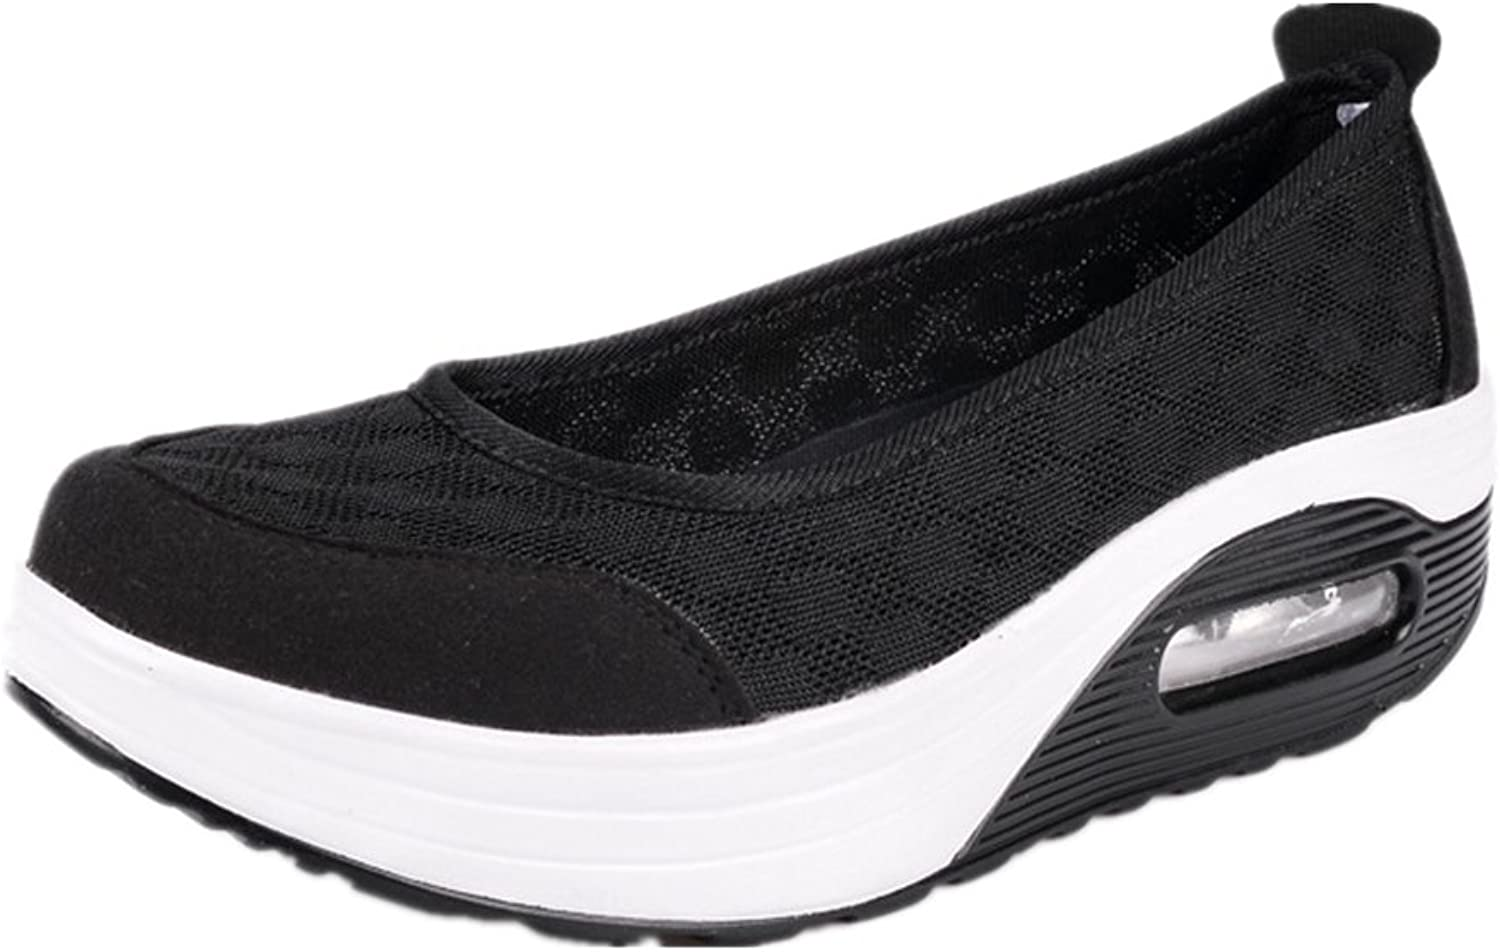 Believed Women Sneakers Comfort Slip On Wedges shoes Breathable Mesh Walking shoes for Women